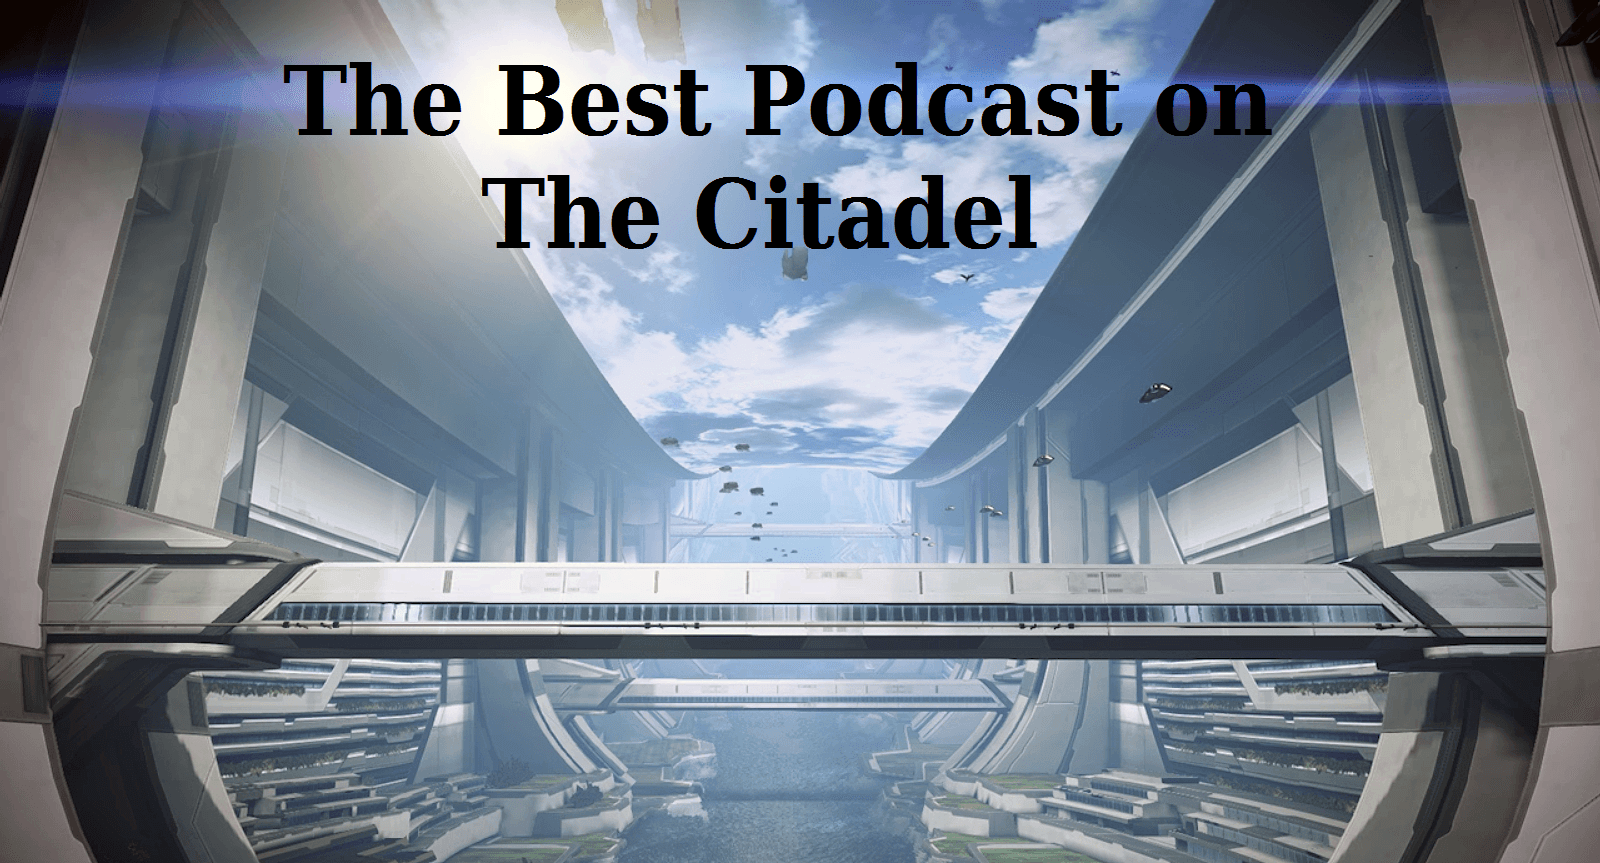 The Best Podcast on the Citadel, Ep. 35